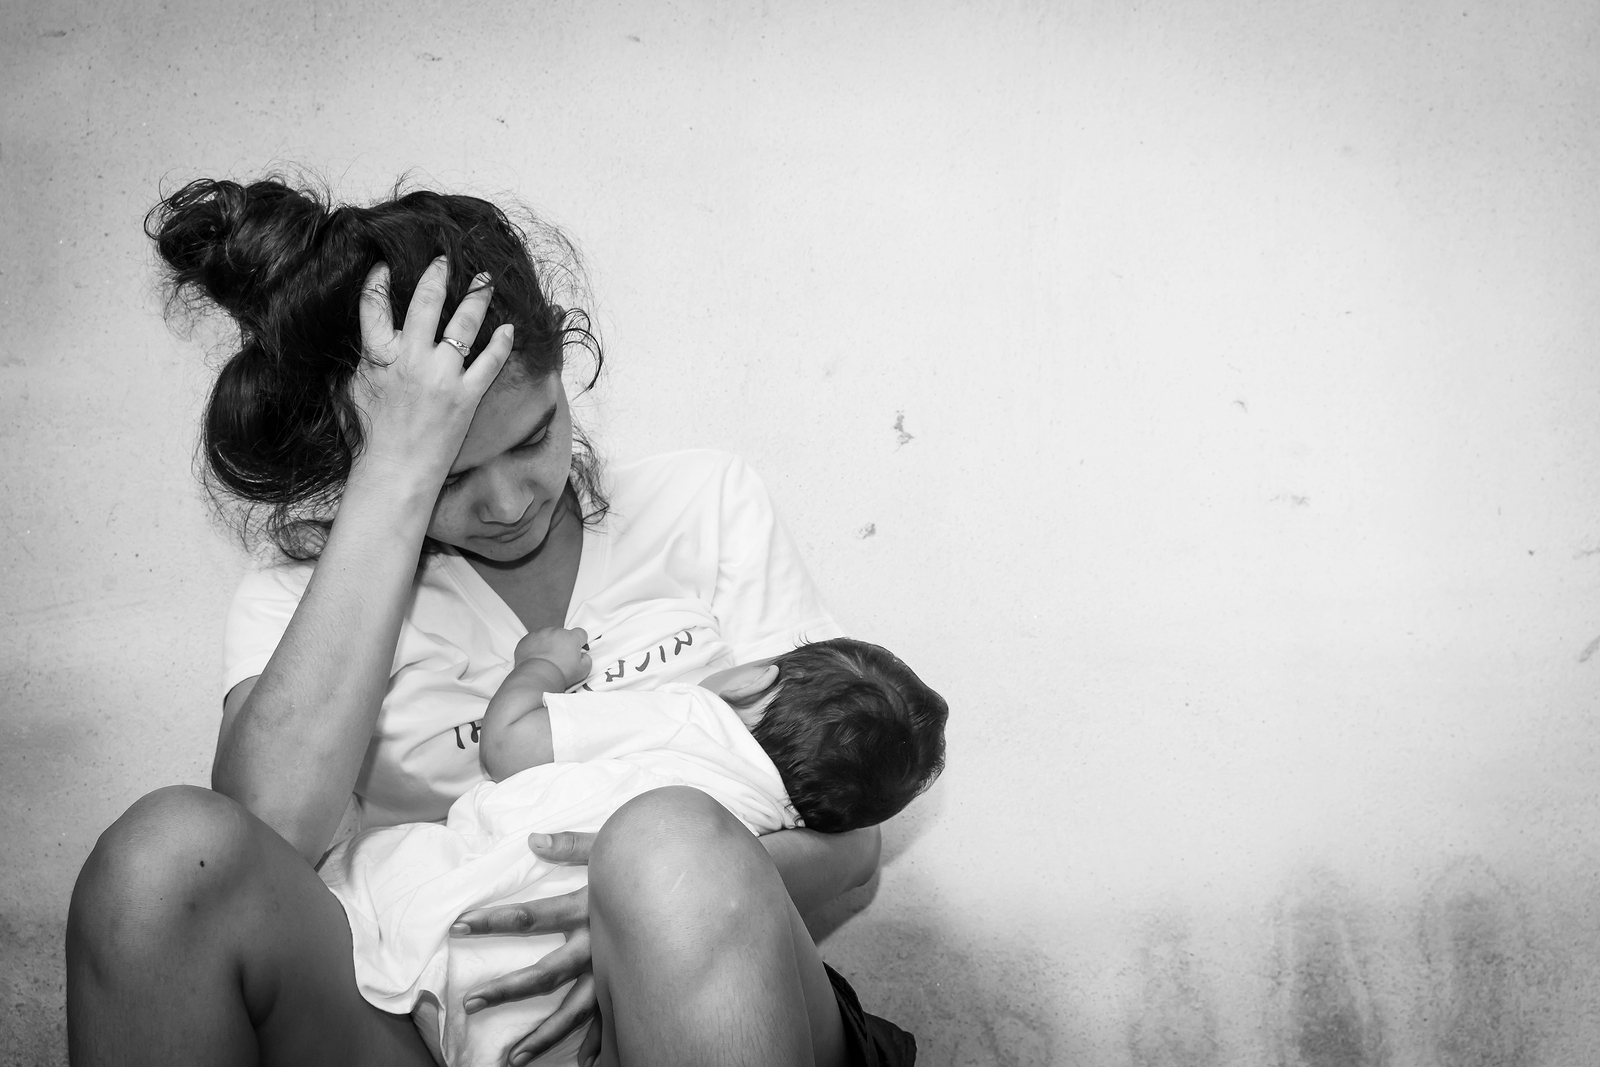 More than one in five postpartum women hide anxiety they experience after birth.